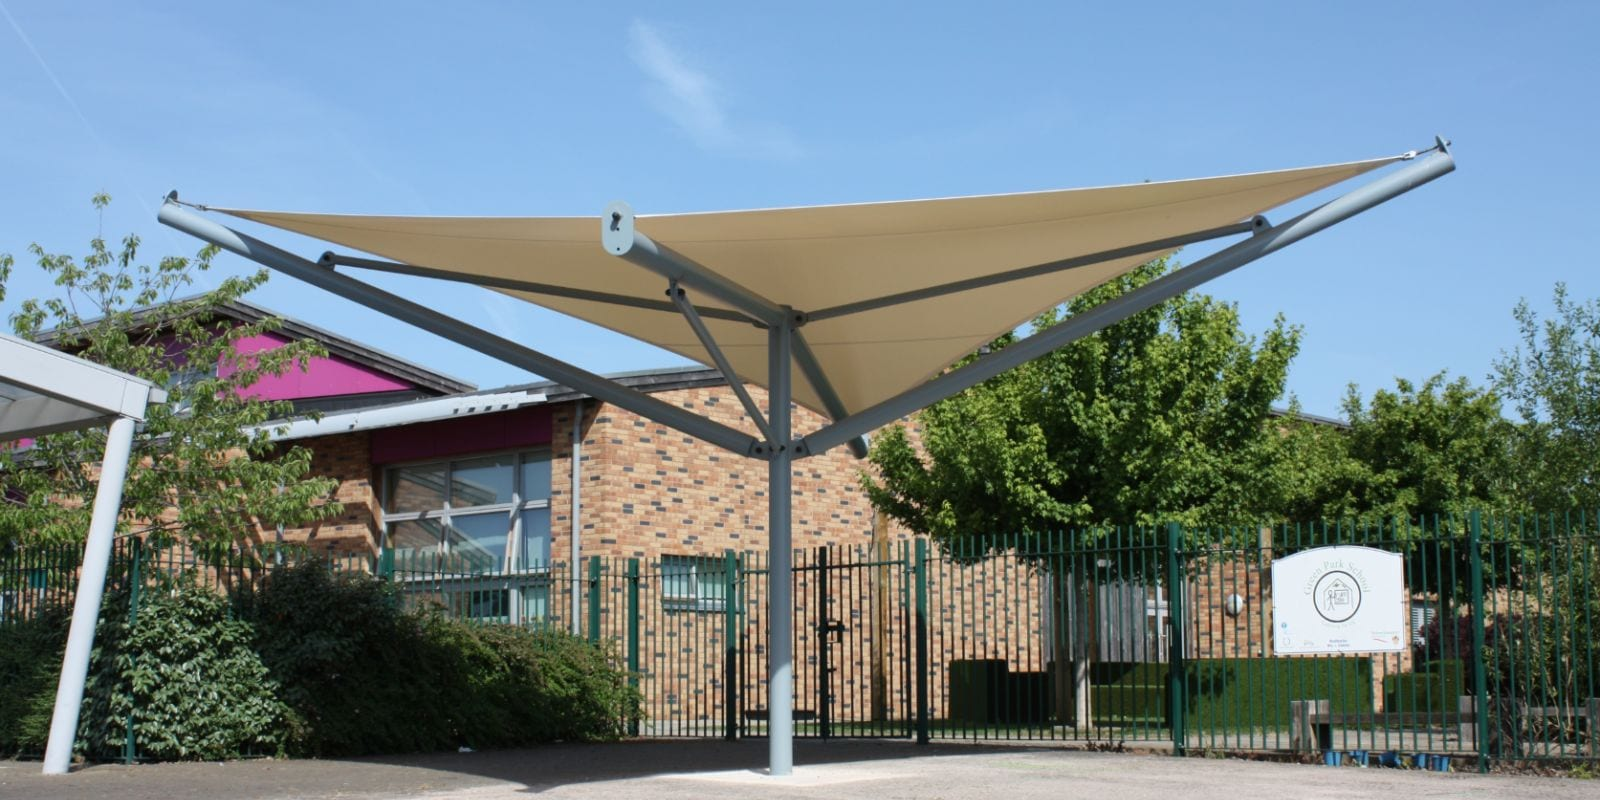 Fabric roof canopy we installed at Green Park Primary School